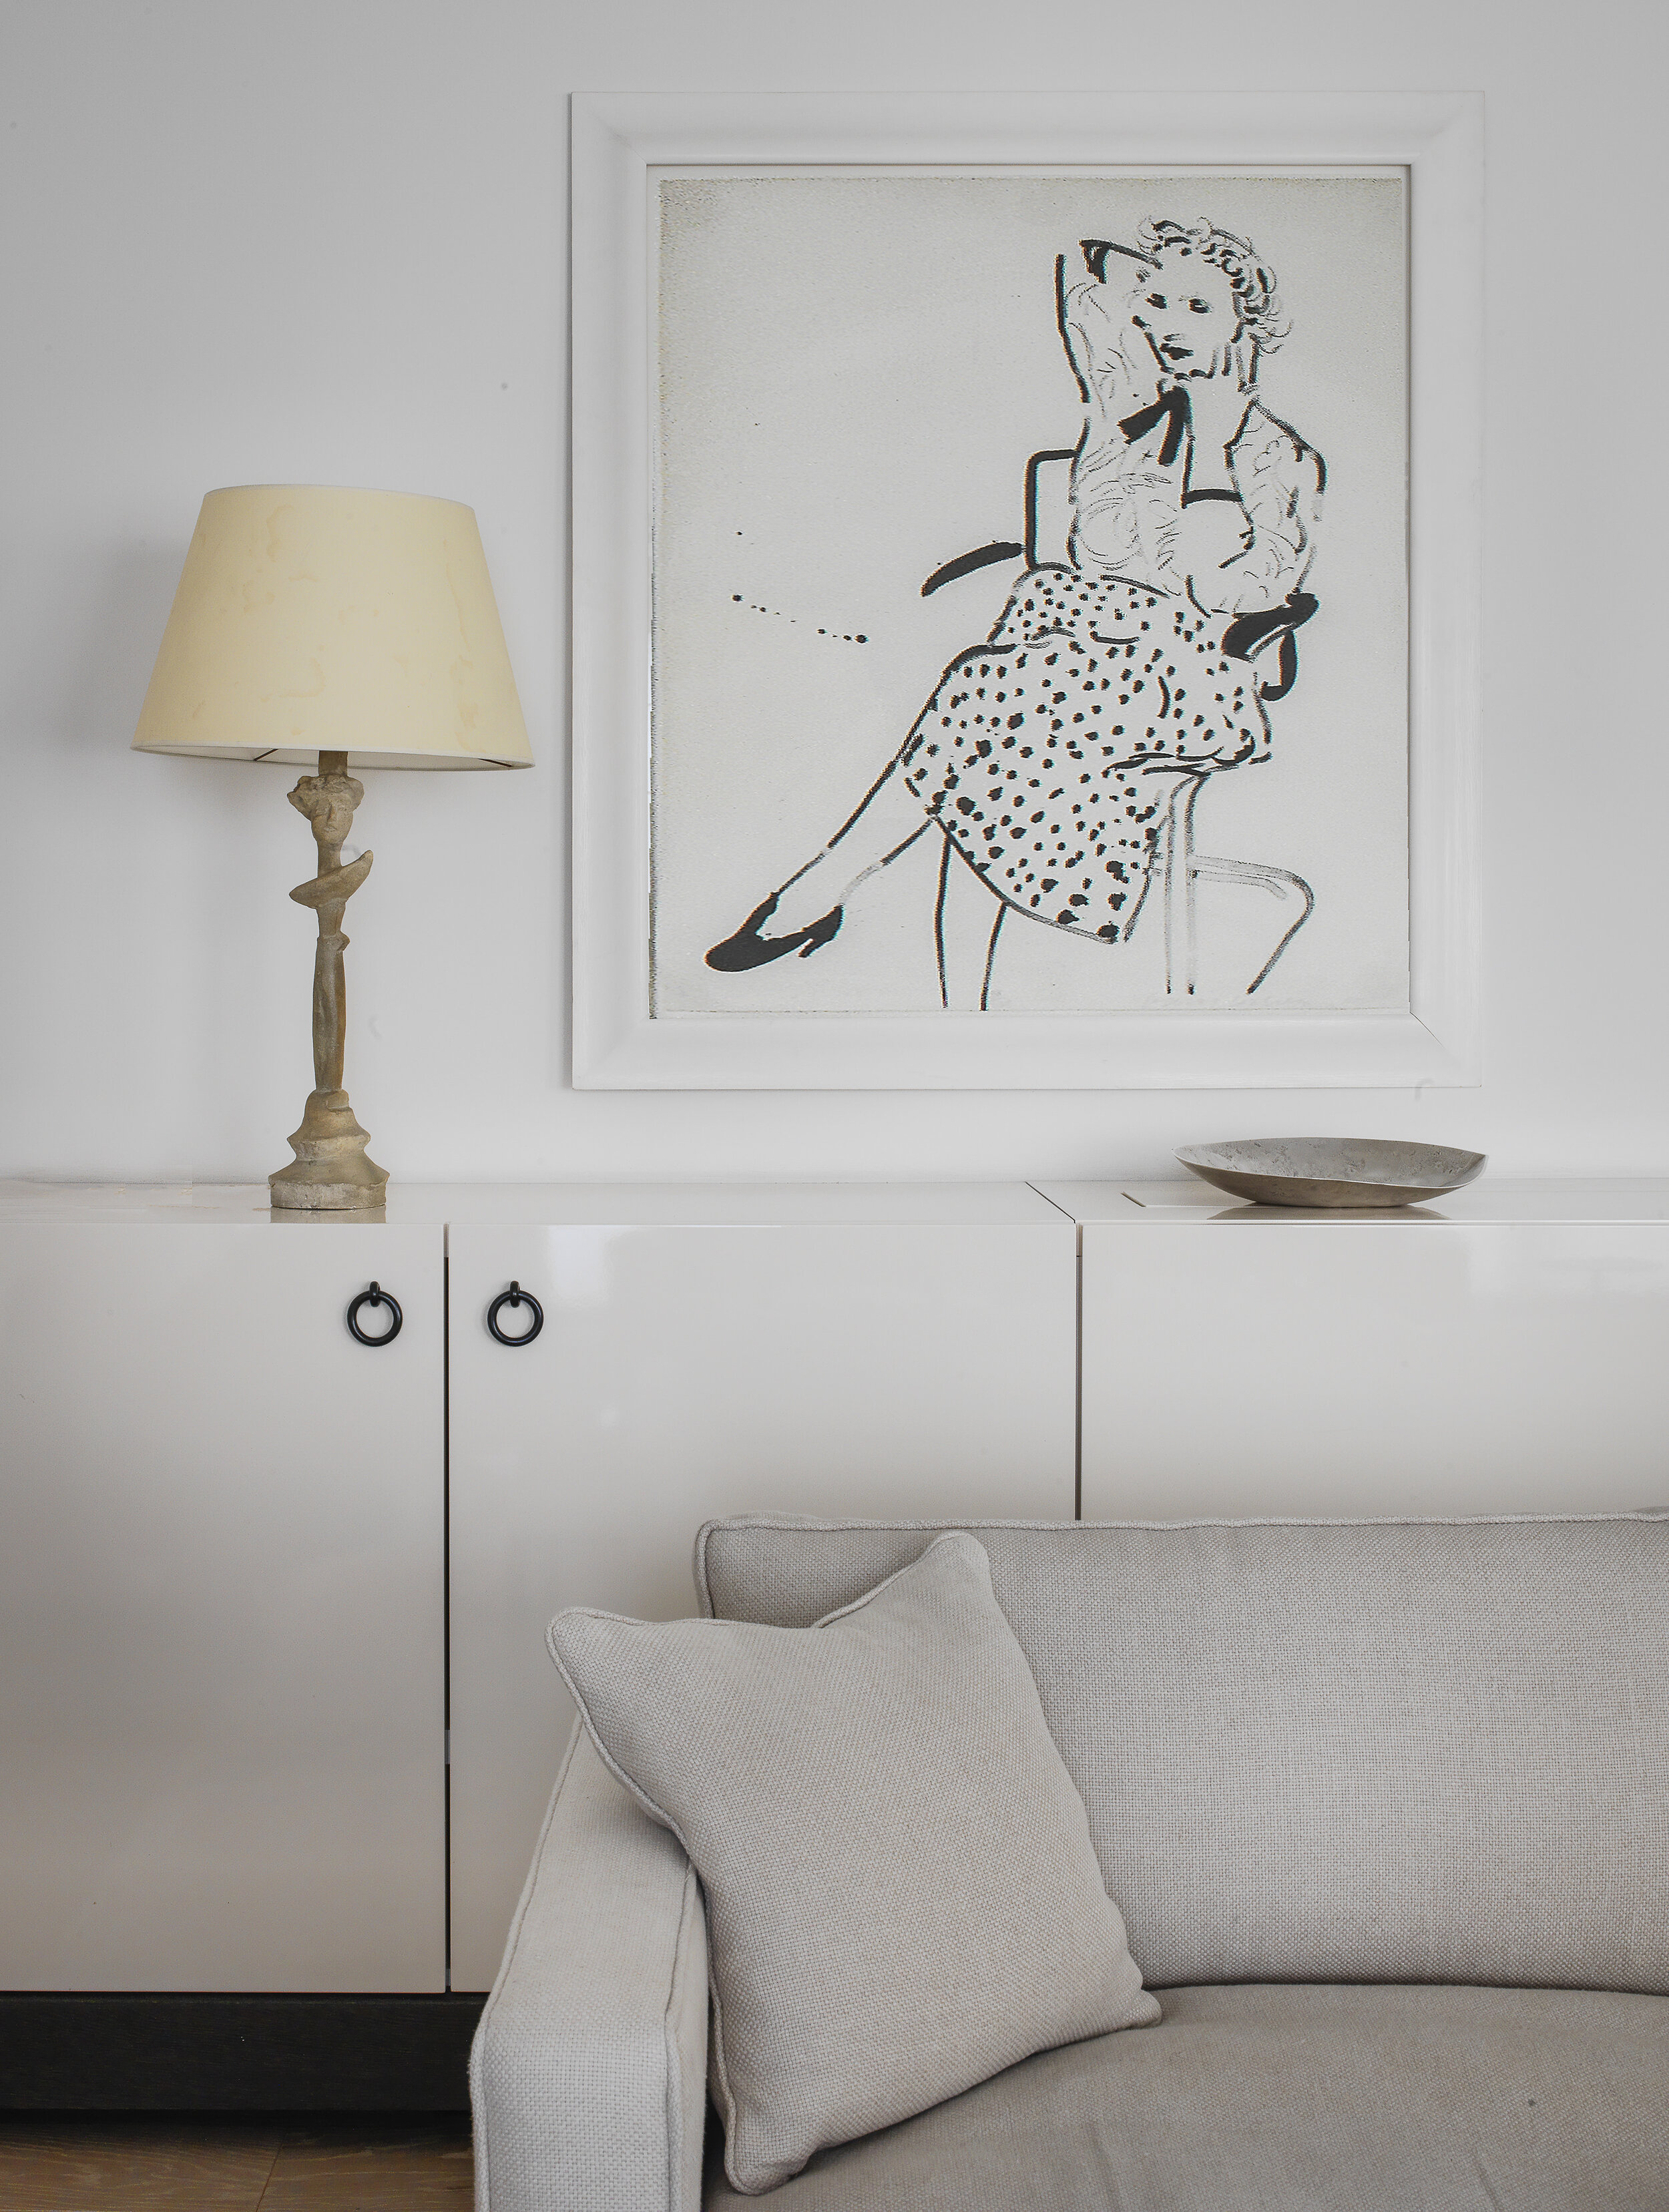 Isabel-Ettedgui-Apartment-Chester-Square-Lamp-and-Artwork-in-Living-Room-.jpg